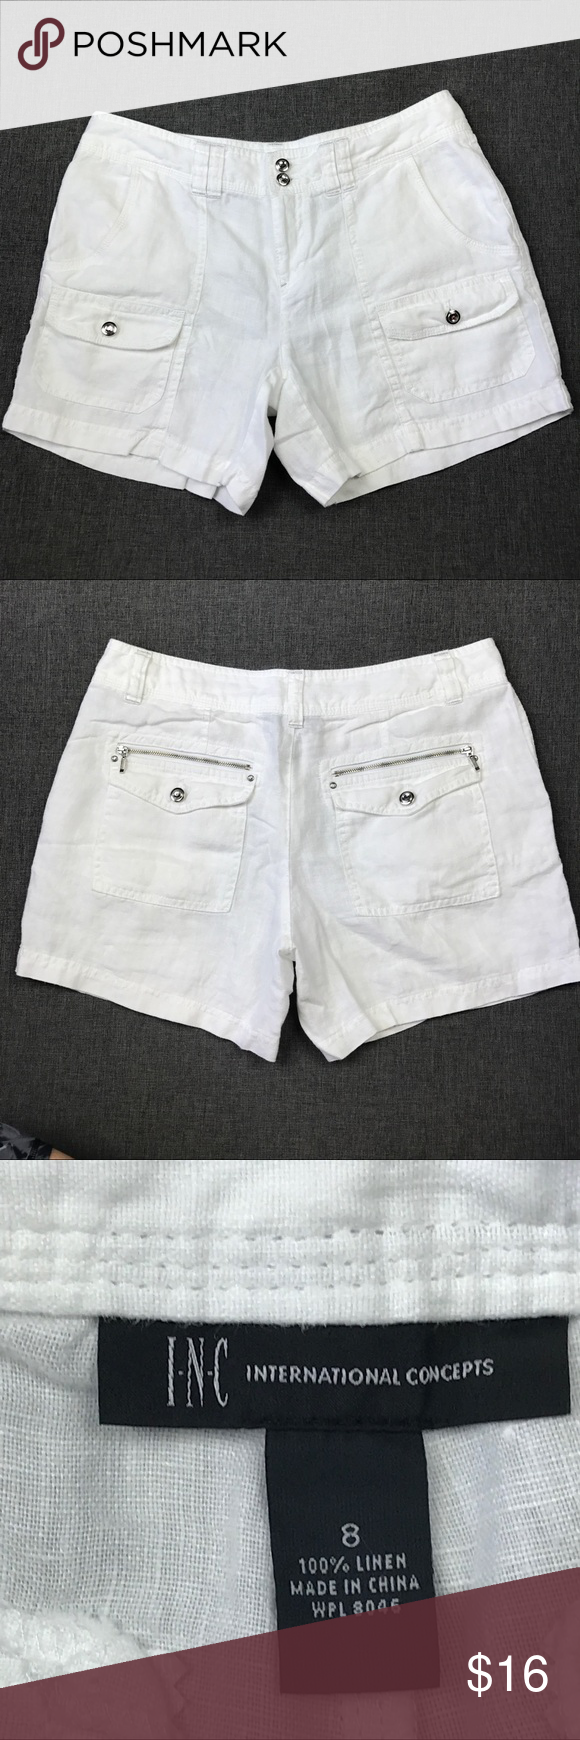 "INC White 100% White Linen Shorts Flat lay measurements: Waist- 16"" Rise- 9"" Hips- 22"" Inseam- 5"" INC International Concepts Shorts"